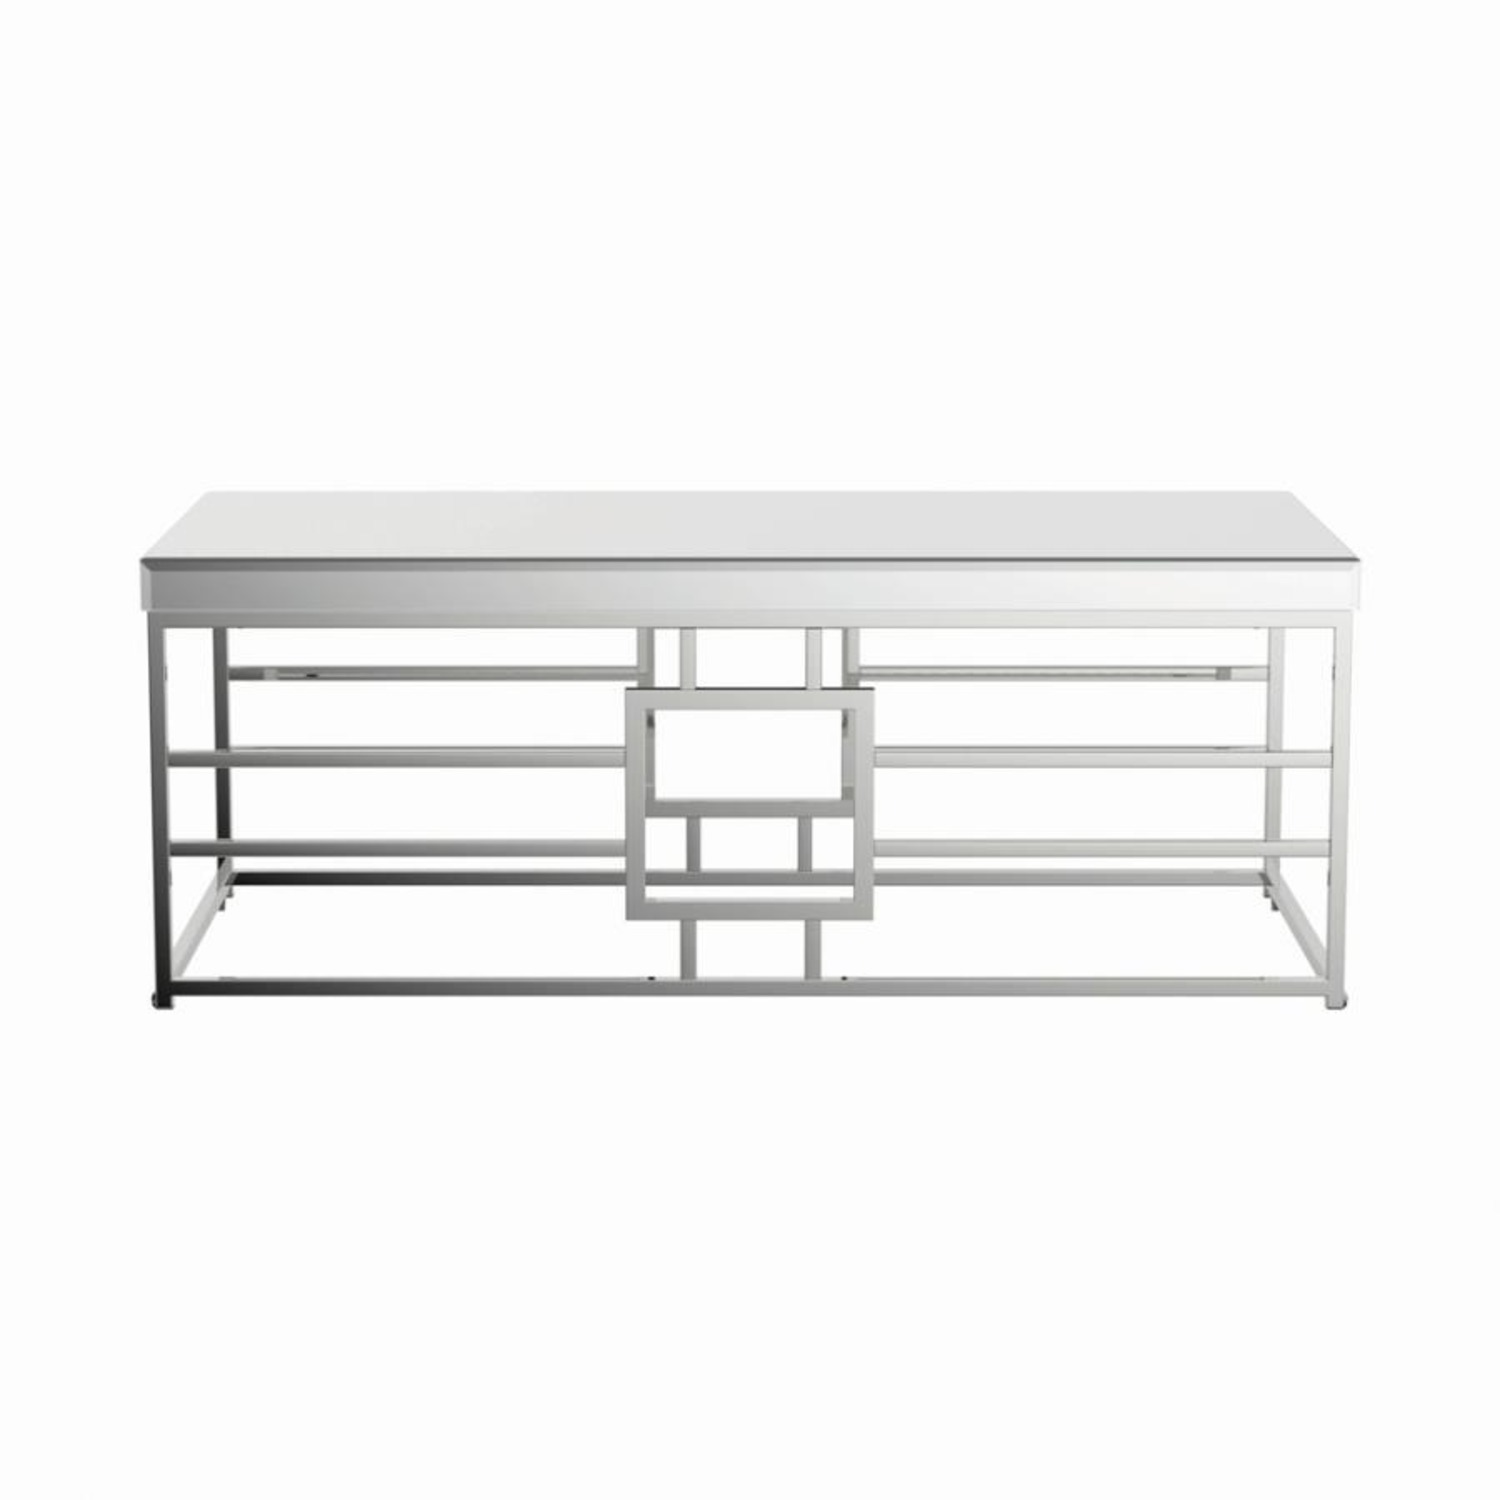 Modern Coffee Table In Chrome Finish Frame - image-1